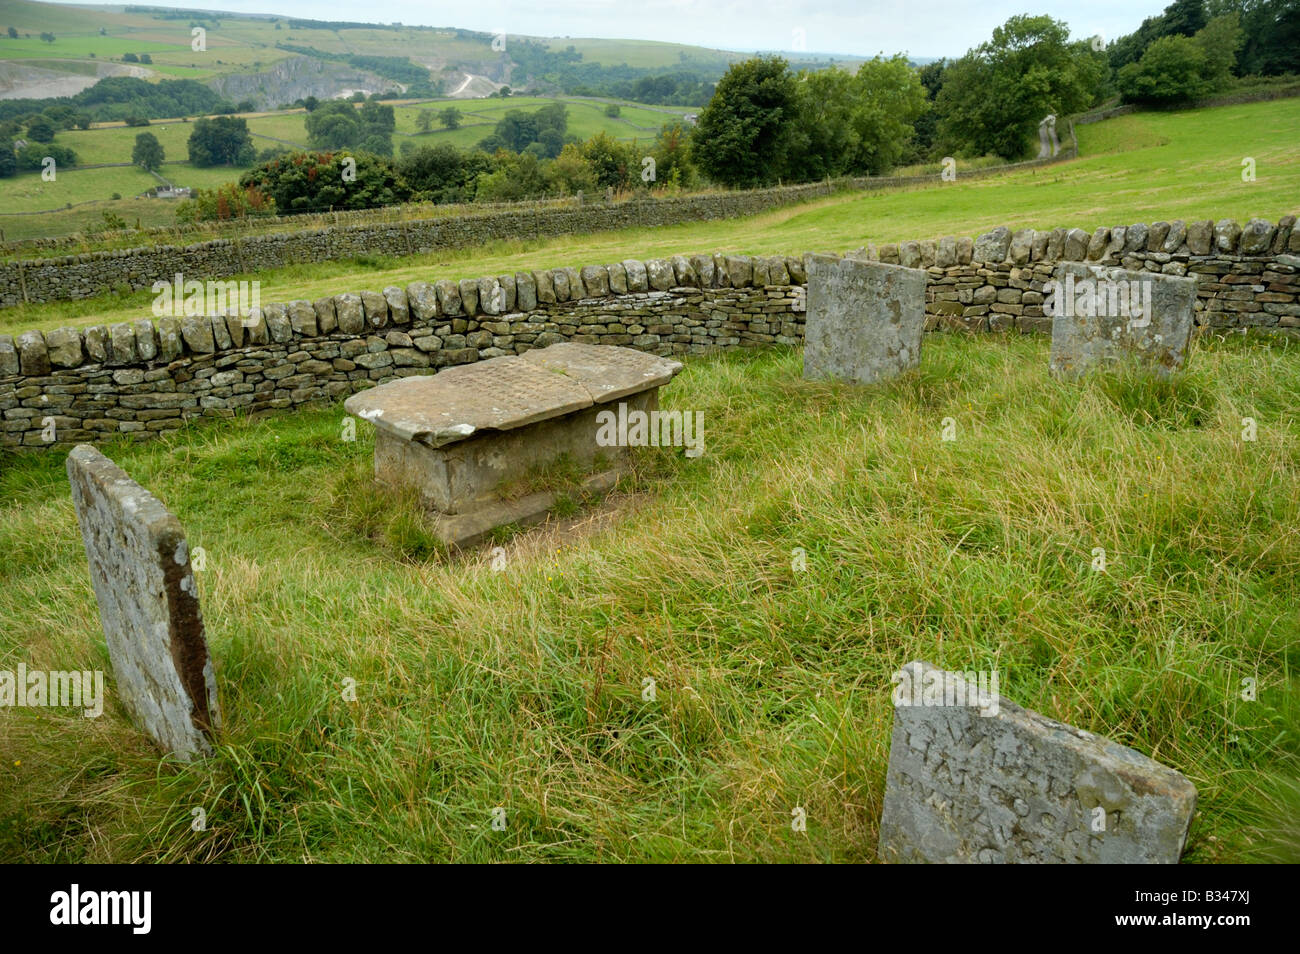 Riley Graves in Eyam England burial place of the Hancock family plague victims - Stock Image